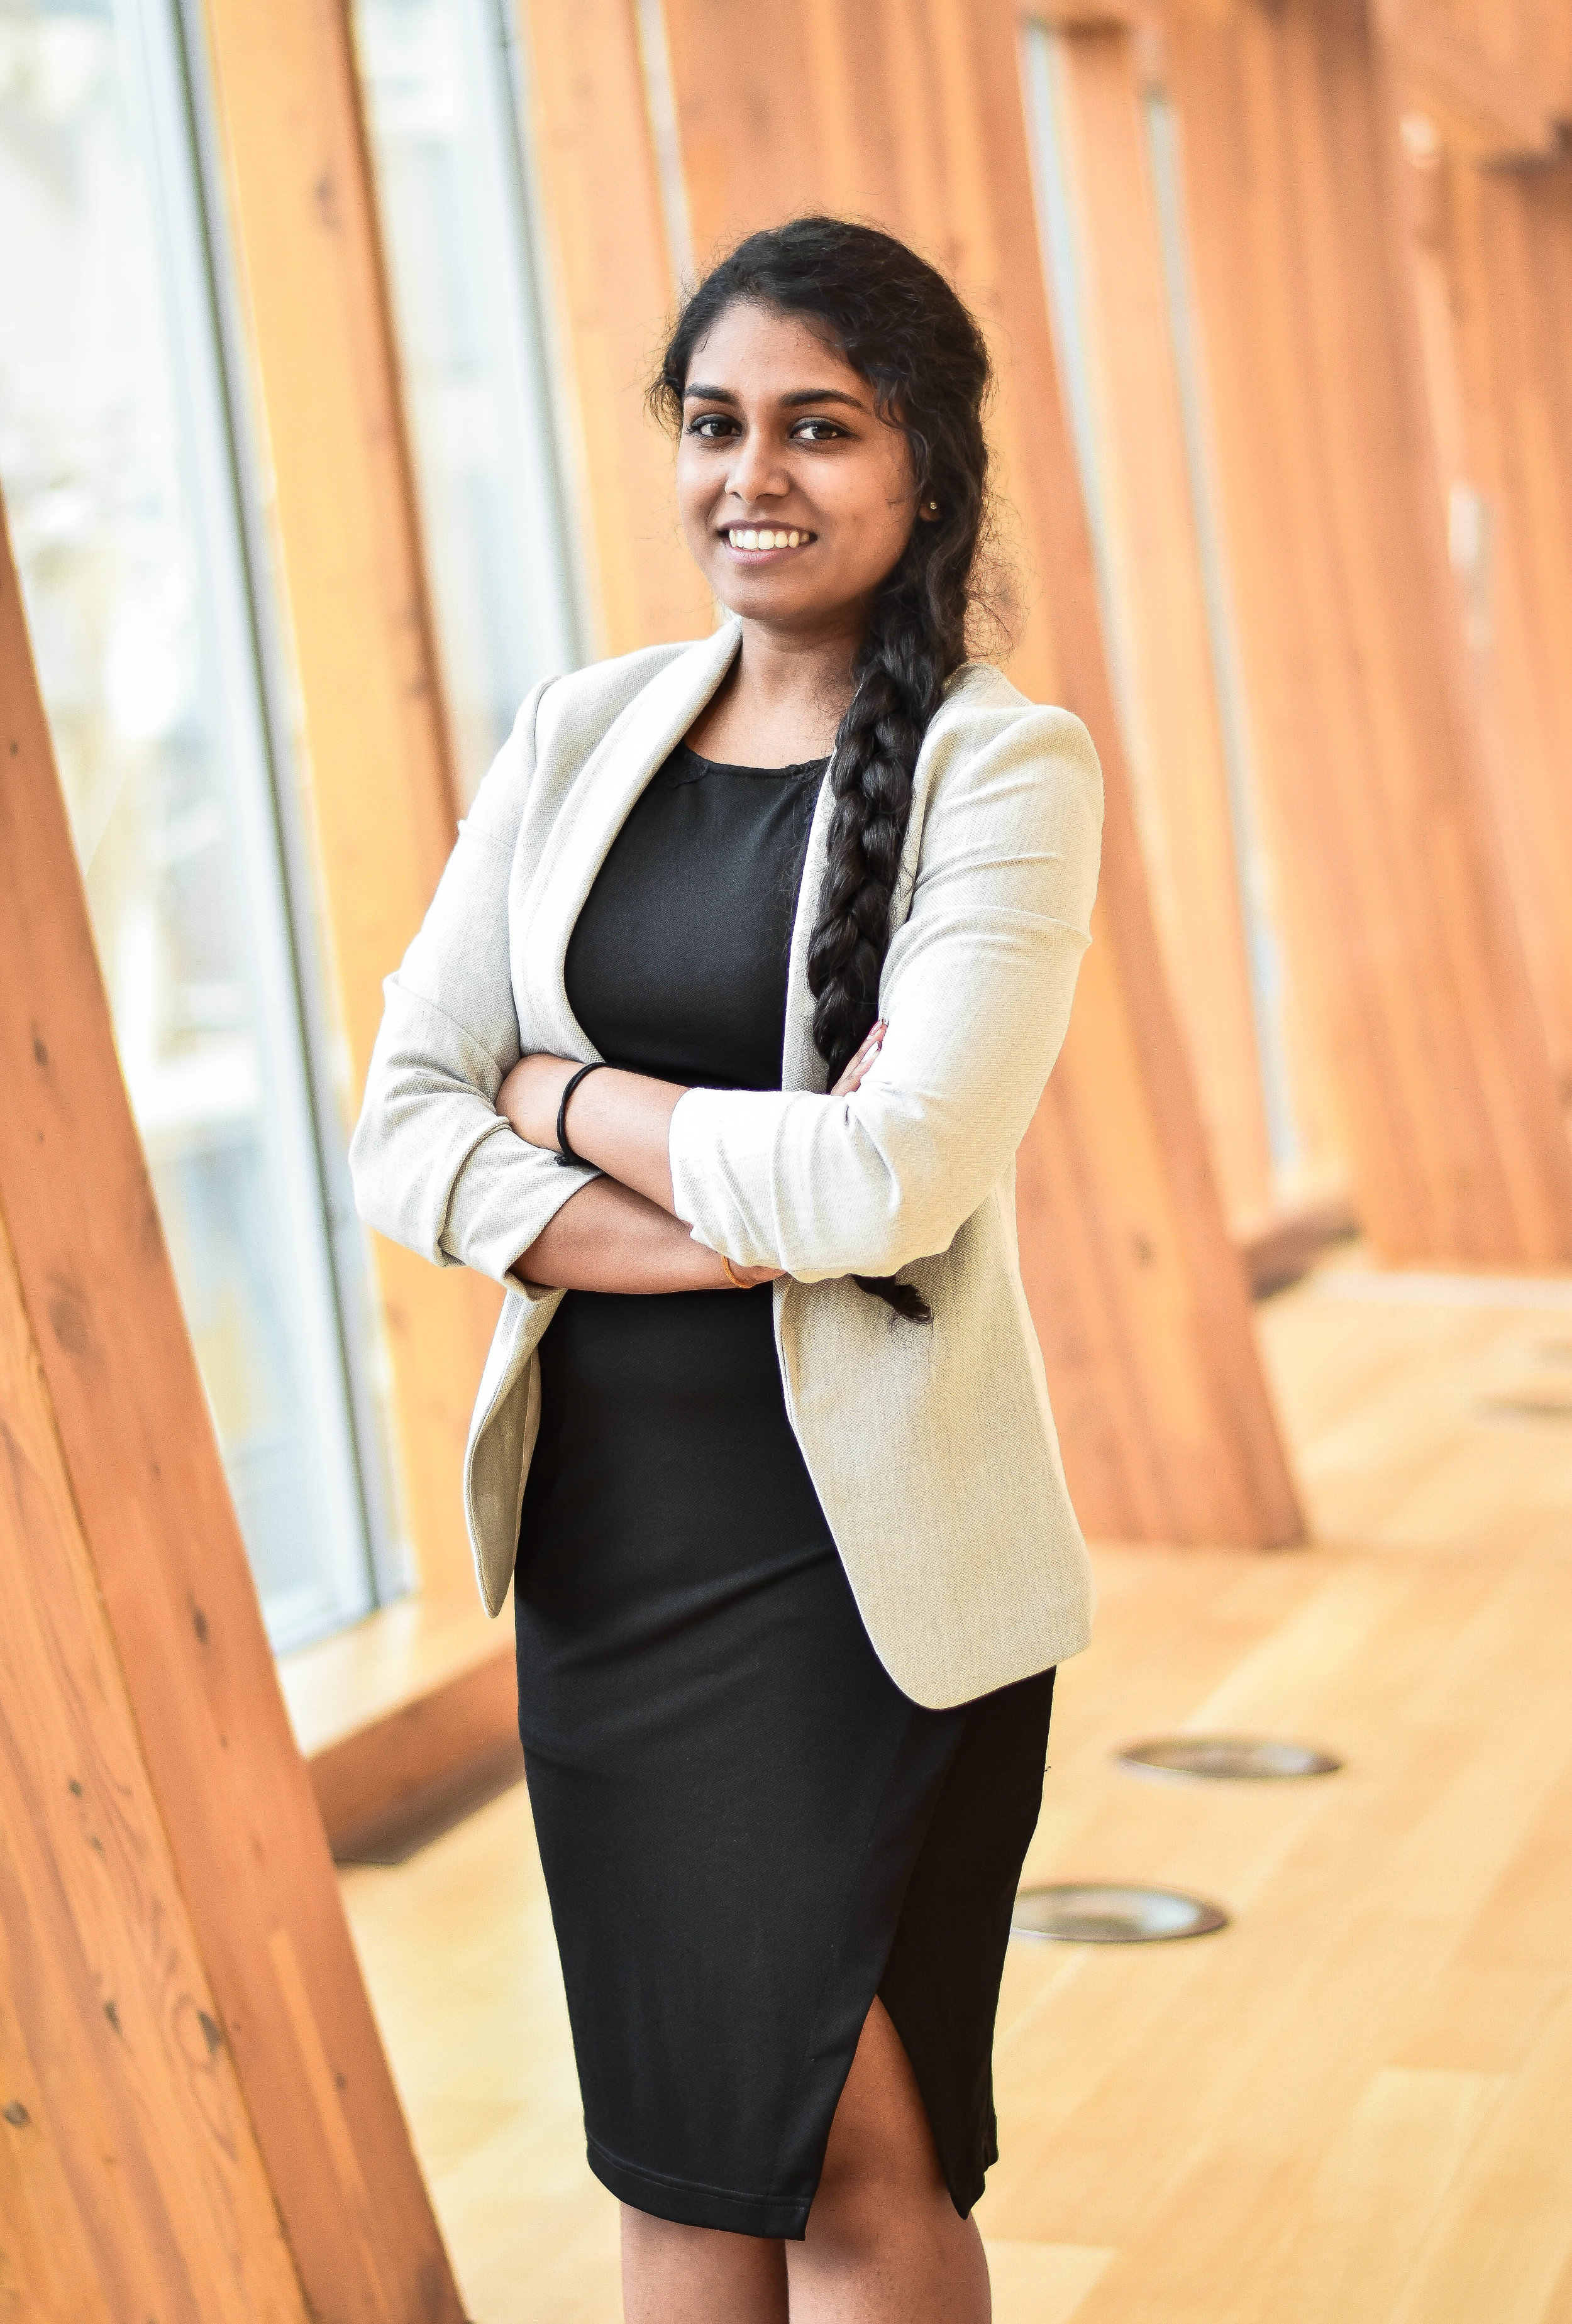 Jathavi Shanmuganantham - Vice President of Corporate RelationsJathavi is a third year BTM Co-op student, minoring in Music and Culture. During her time at Ryerson, Jathavi hopes to make a positive change in the students' lives by mentoring them and providing them with opportunities to connect with the corporate world through WITM!